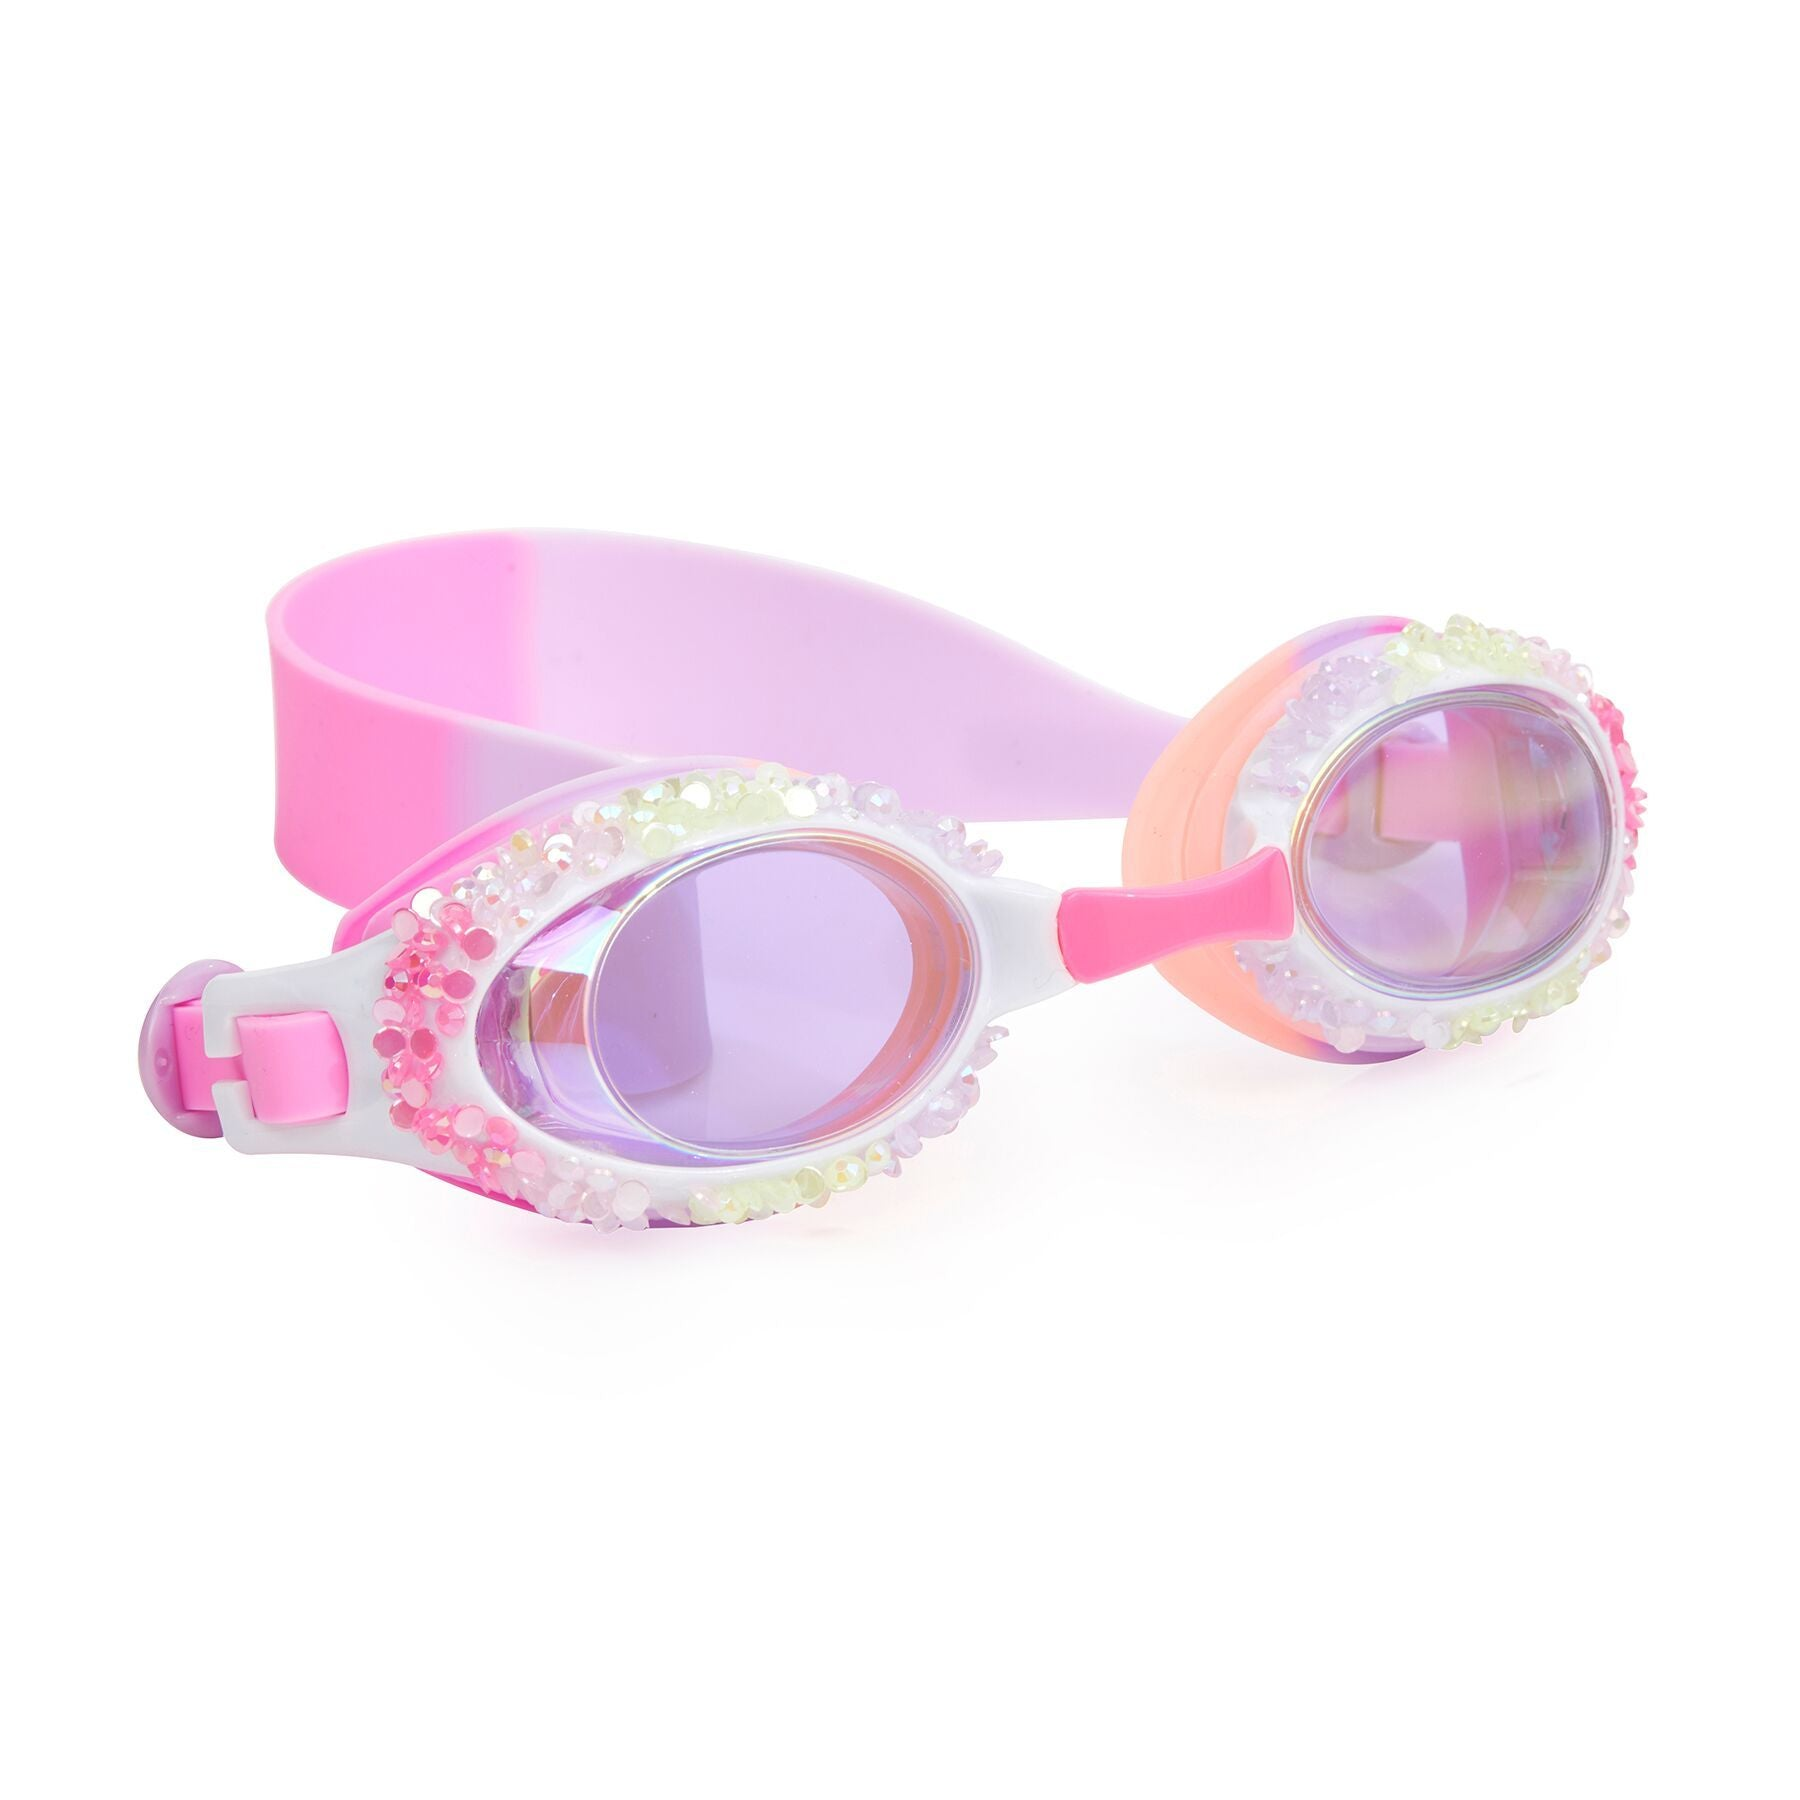 Goggles Spumoni in Popsicle Pink - Fits 3y and up